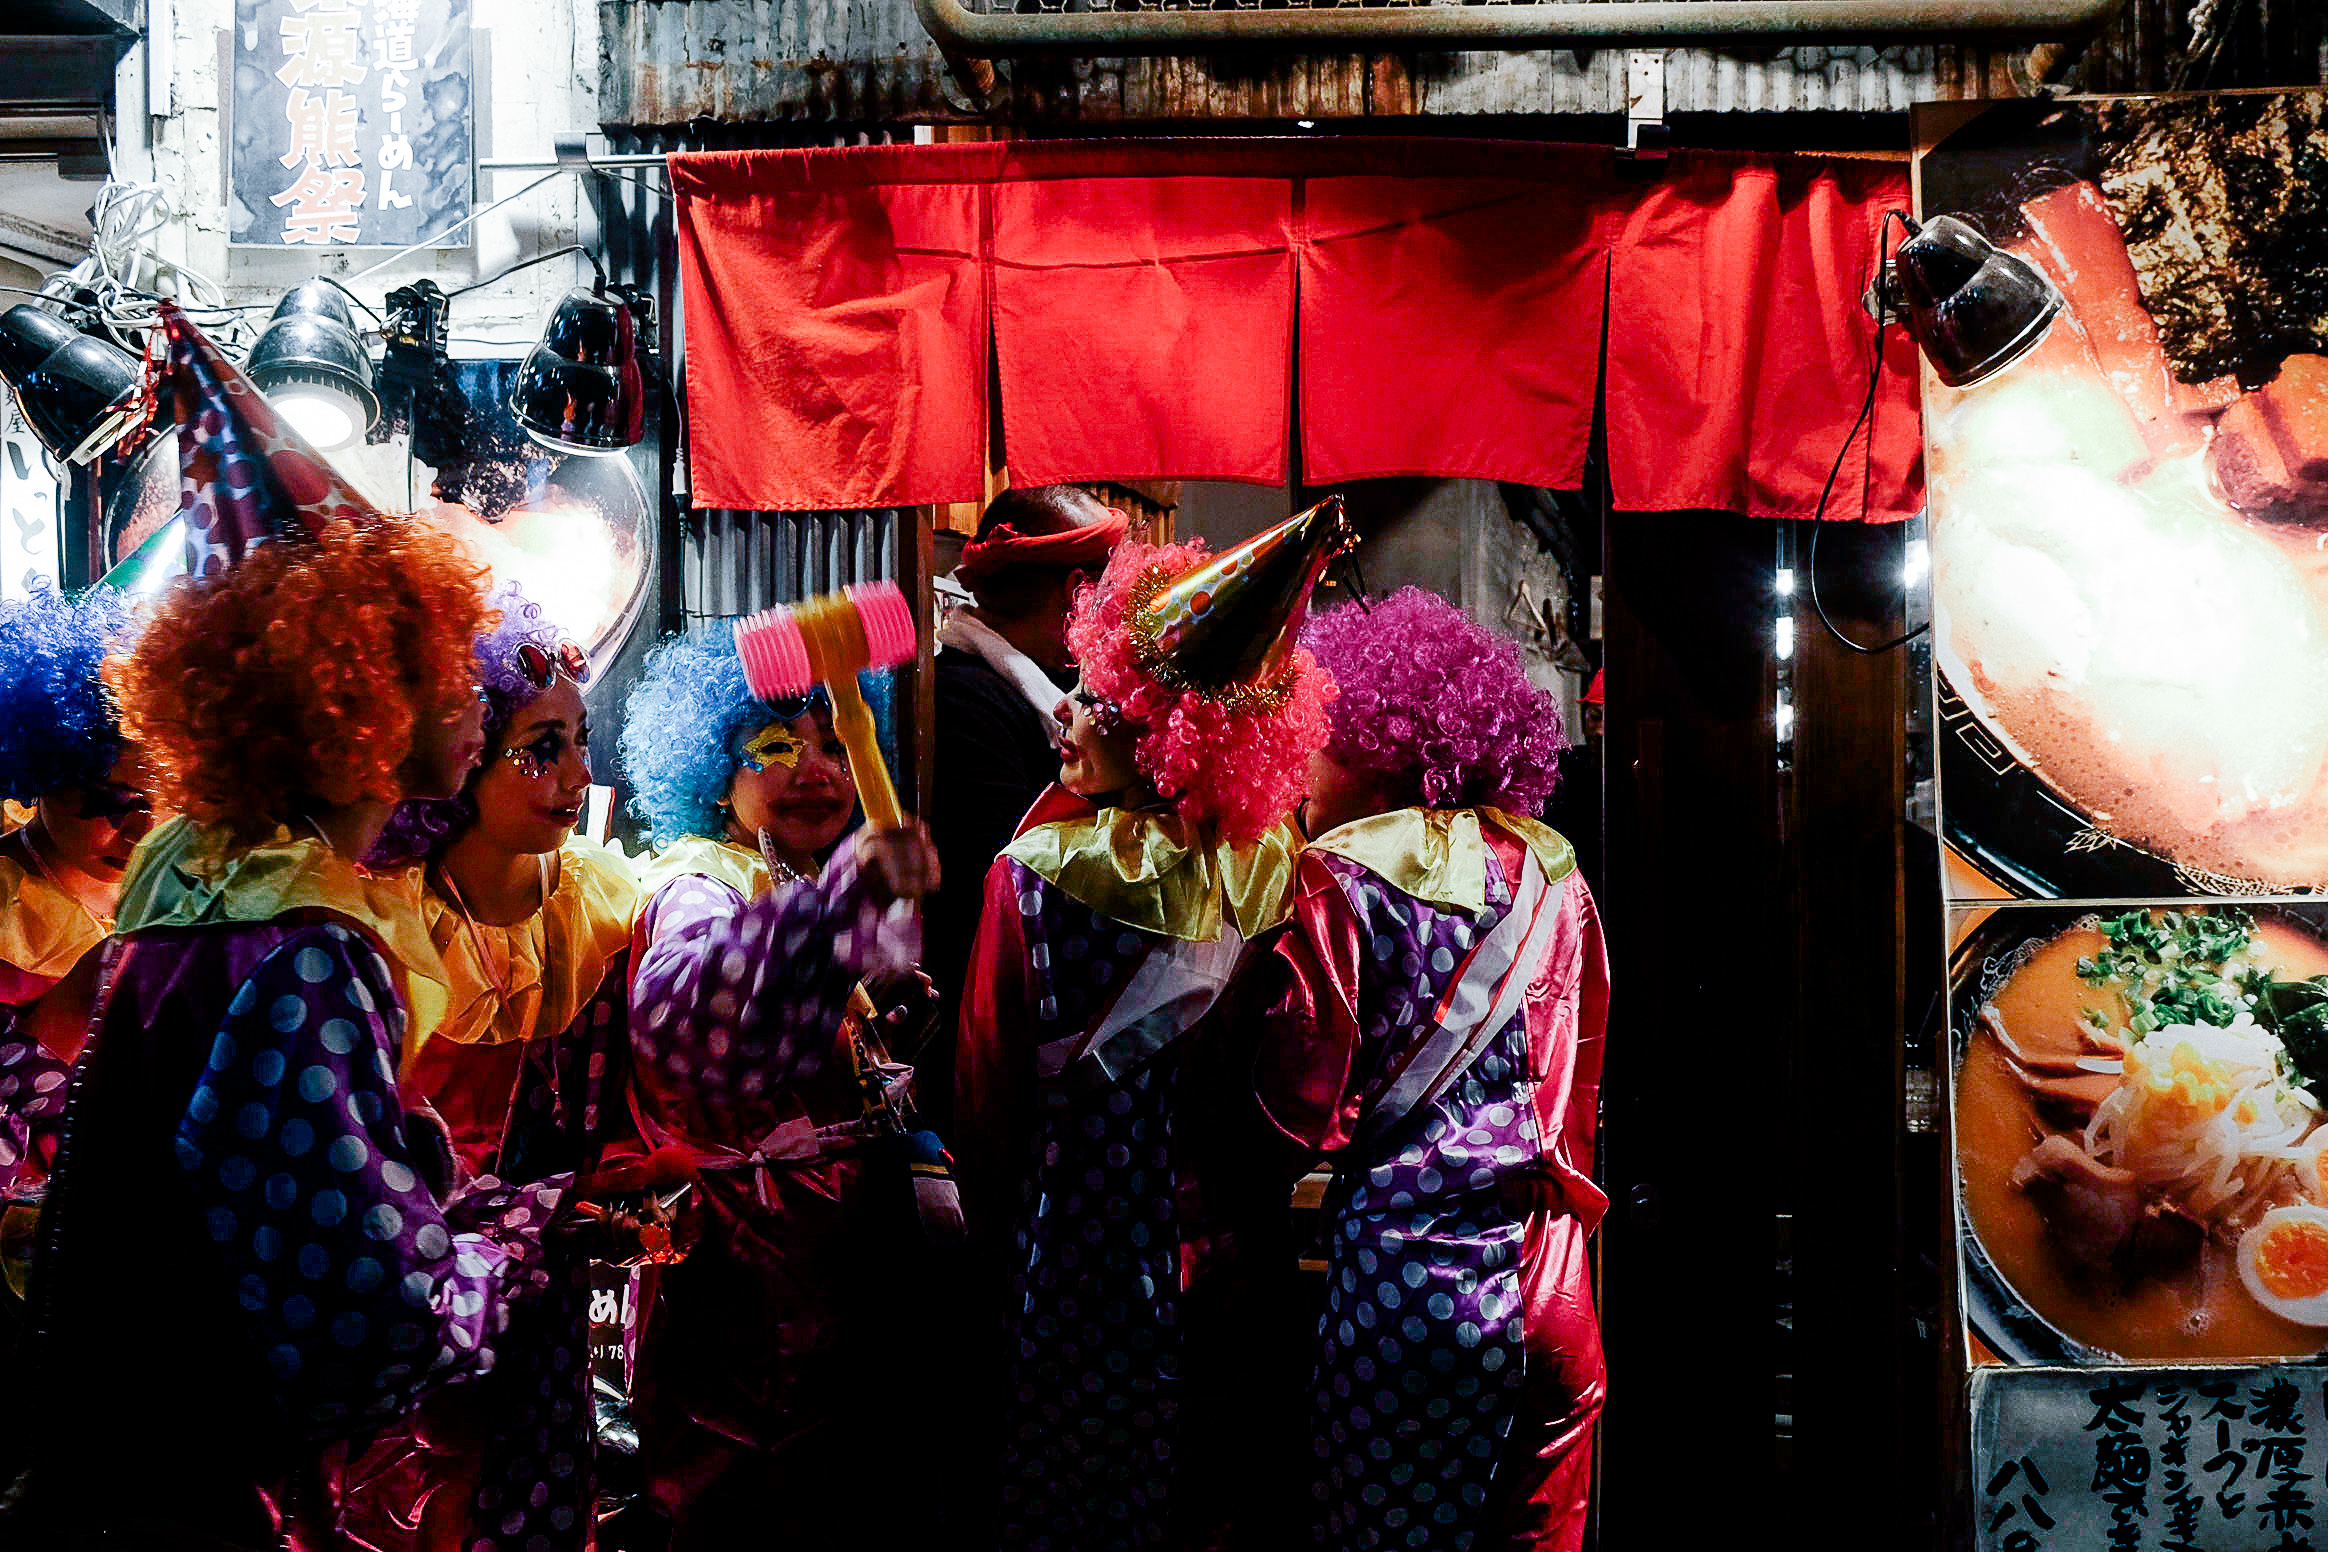 Hungry clowns lining up for a late night snack.